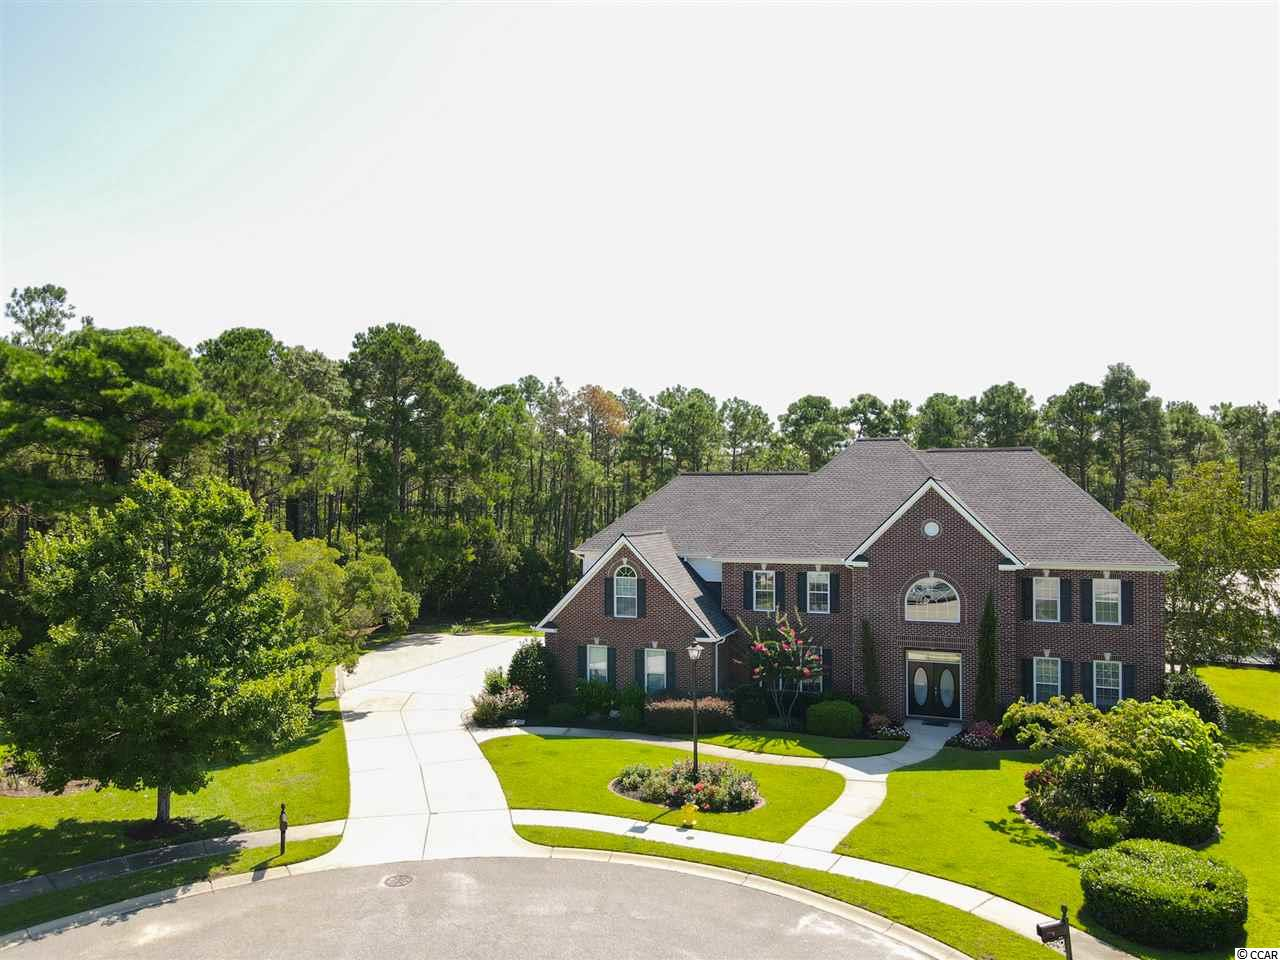 Spacious 6BR/5BA home with a 3 car garage on a quiet cul-de-sac backing to a protected reserve area in Waterford Plantation.  The double lot offers tons of privacy and has an enclosed saltwater pool with slide and water feature, in ground hot tub, fire pit, and outdoor kitchen with granite countertops.  As soon as you enter you will notice the impressive size of every room in this 5200 square foot home.  Kitchen was renovated in 2018 and includes stainless steel appliances, granite countertops, tile backsplash, and large breakfast nook.  Behind the double doors of the spacious master suite you will find tray ceilings, large walk in closet, double sinks, whirlpool tub, and shower.  Three of the bedrooms on the second floor also have en-suite bathrooms.  Other features include high ceilings in the foyer, formal dining room, an oversized driveway with plenty of parking, and the screened porch has all season windows for year round use.  Roof was replaced in 2016.  HVAC units replaced in 2015.   Community amenities include tennis courts, basketball court, and pool.  Great location with easy access to Highway 501 and Highway 31.  Close to shopping, golf, dining, and just 15 minutes to the beach.  All information is deemed reliable but not guaranteed.  Buyer responsible for verification.